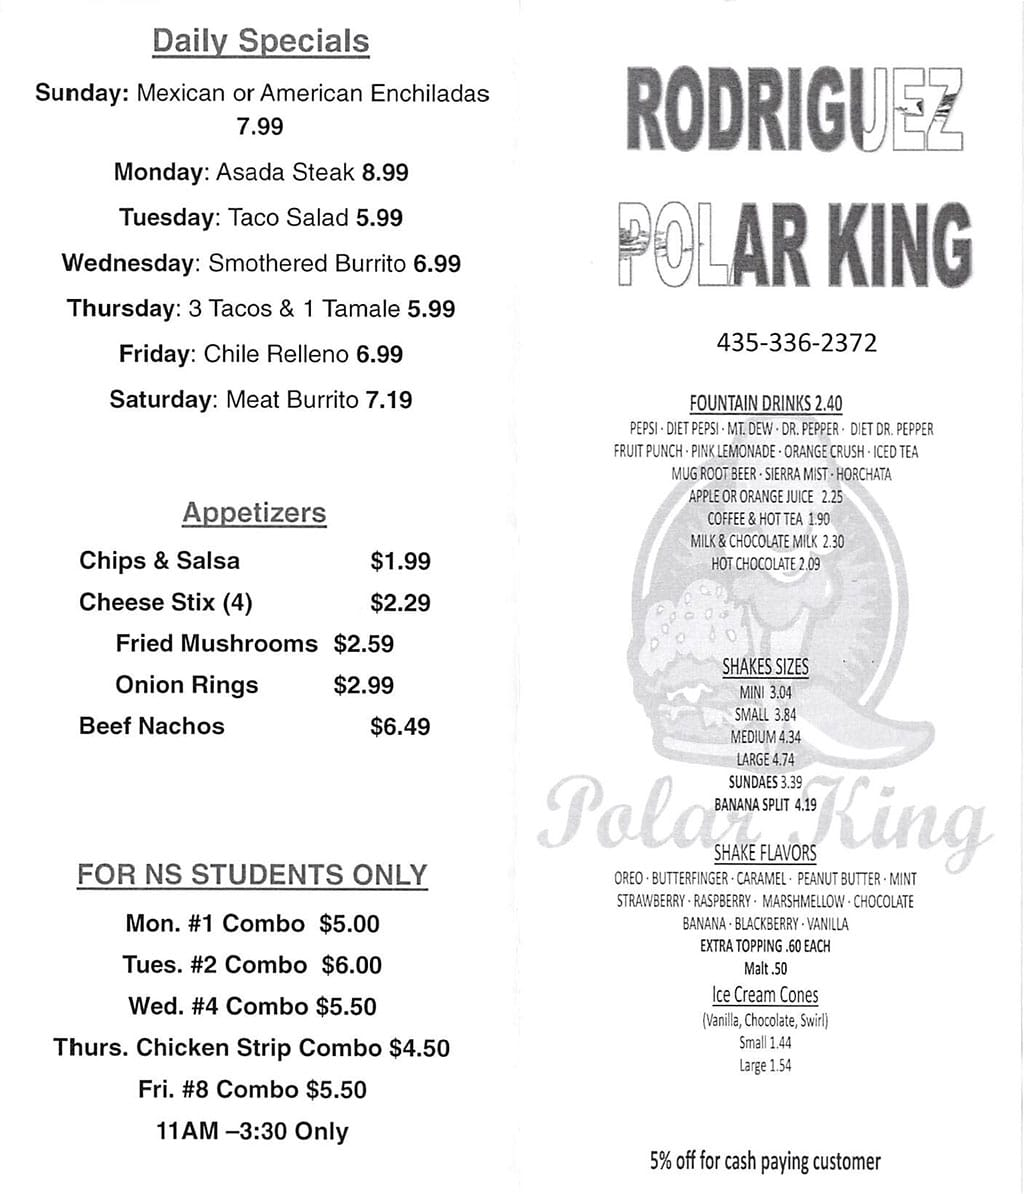 Polar King Drive-Inn menu - daily specials, appetizers, drinks, shakes